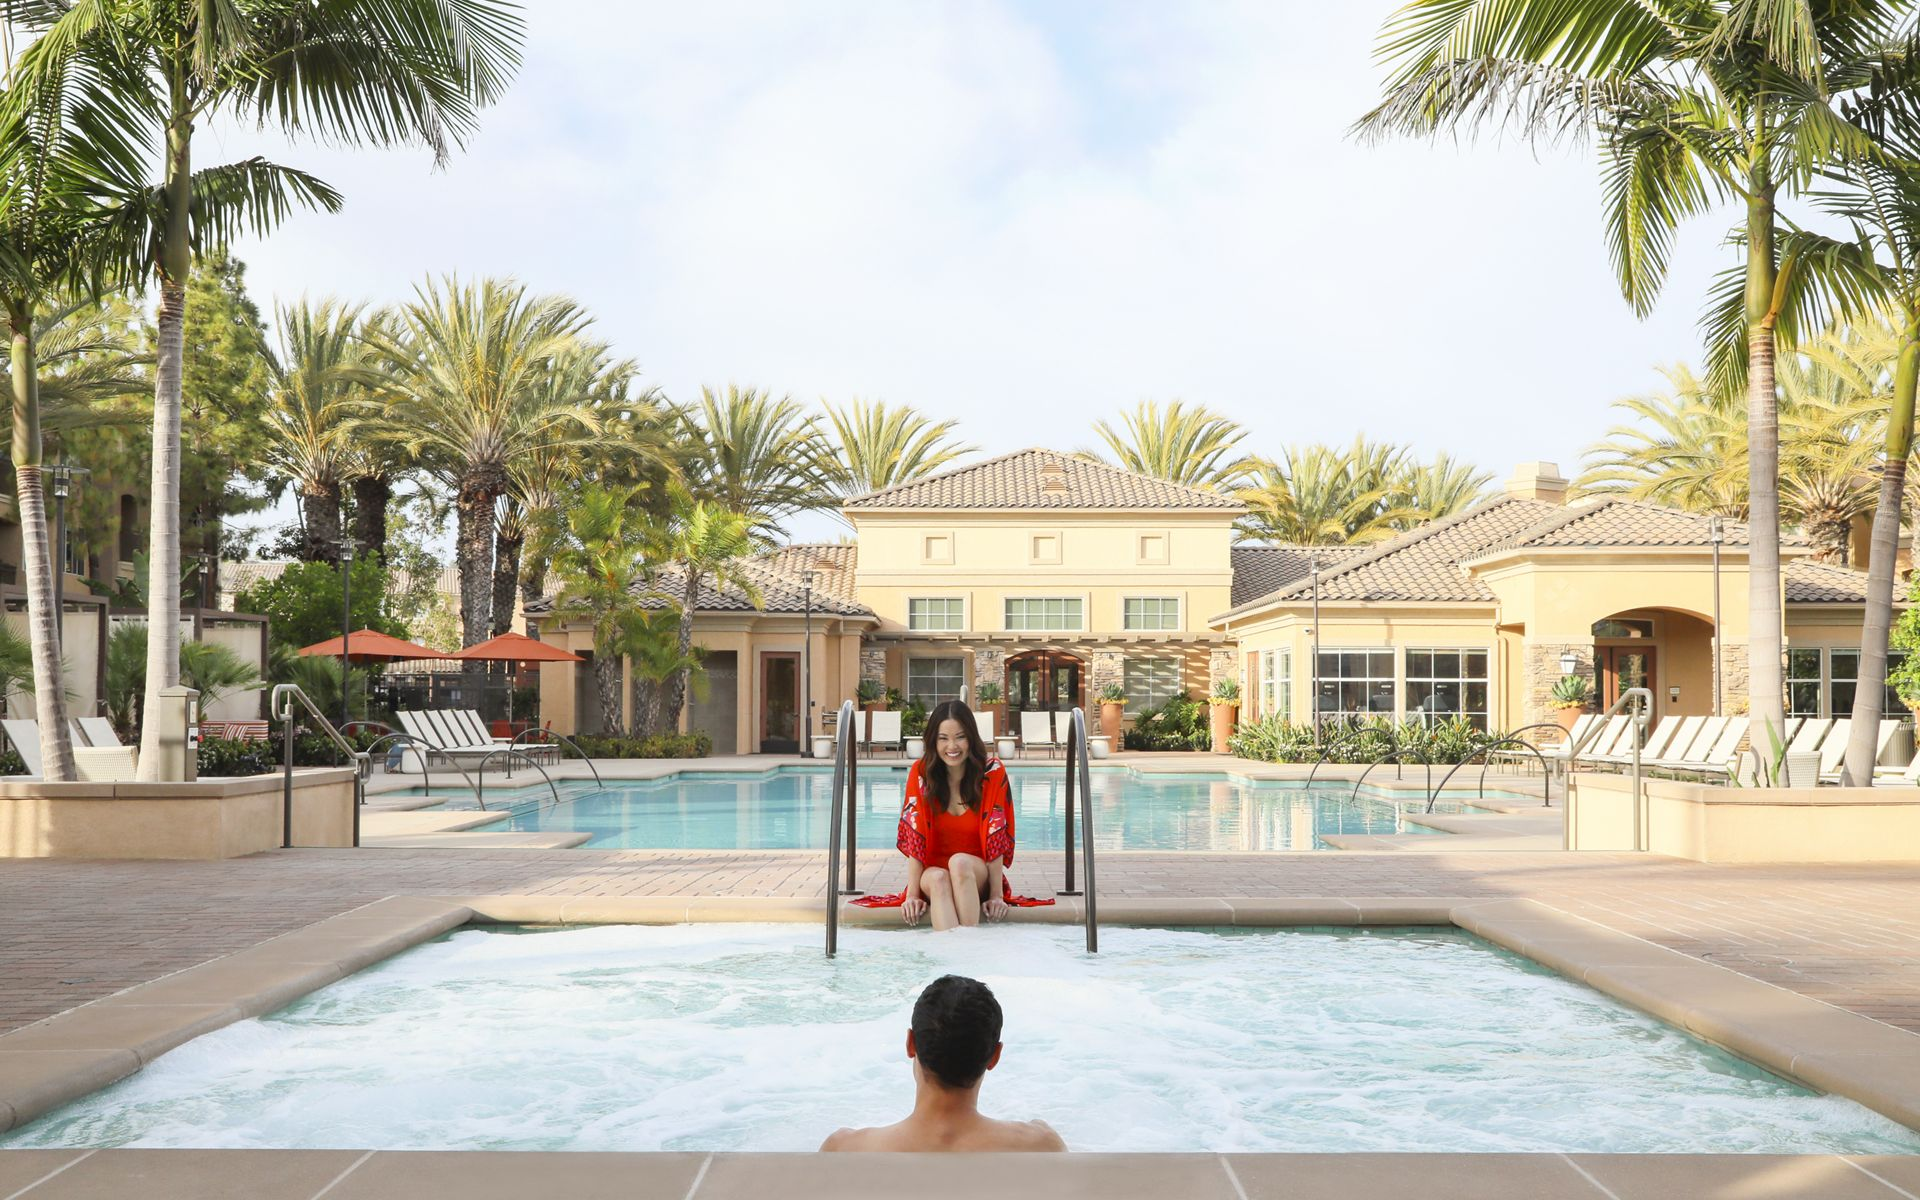 People spending time in the pool and spa at Del Rio Apartment Homes in Mission Valley, CA.